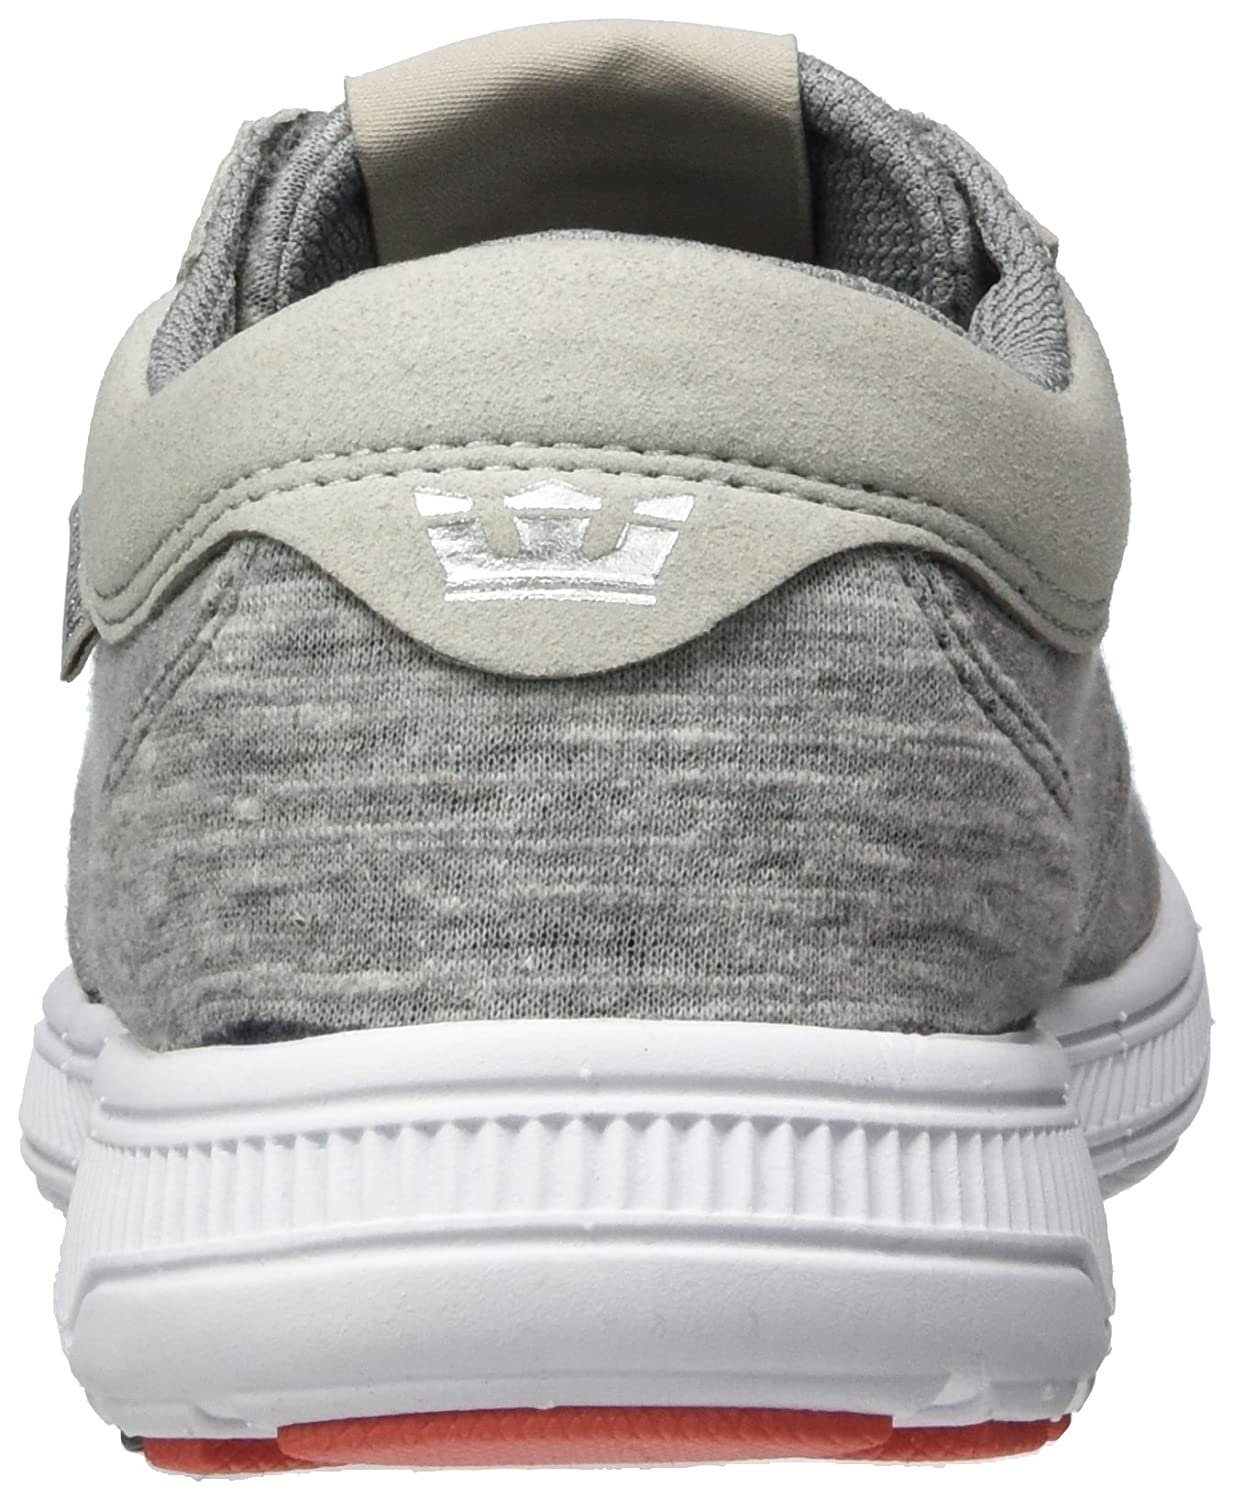 Supra Men's Hammer 8 Run Skate Shoe B01IFN5T3G 8 Hammer B(M) US|Grey/White b5b6dc